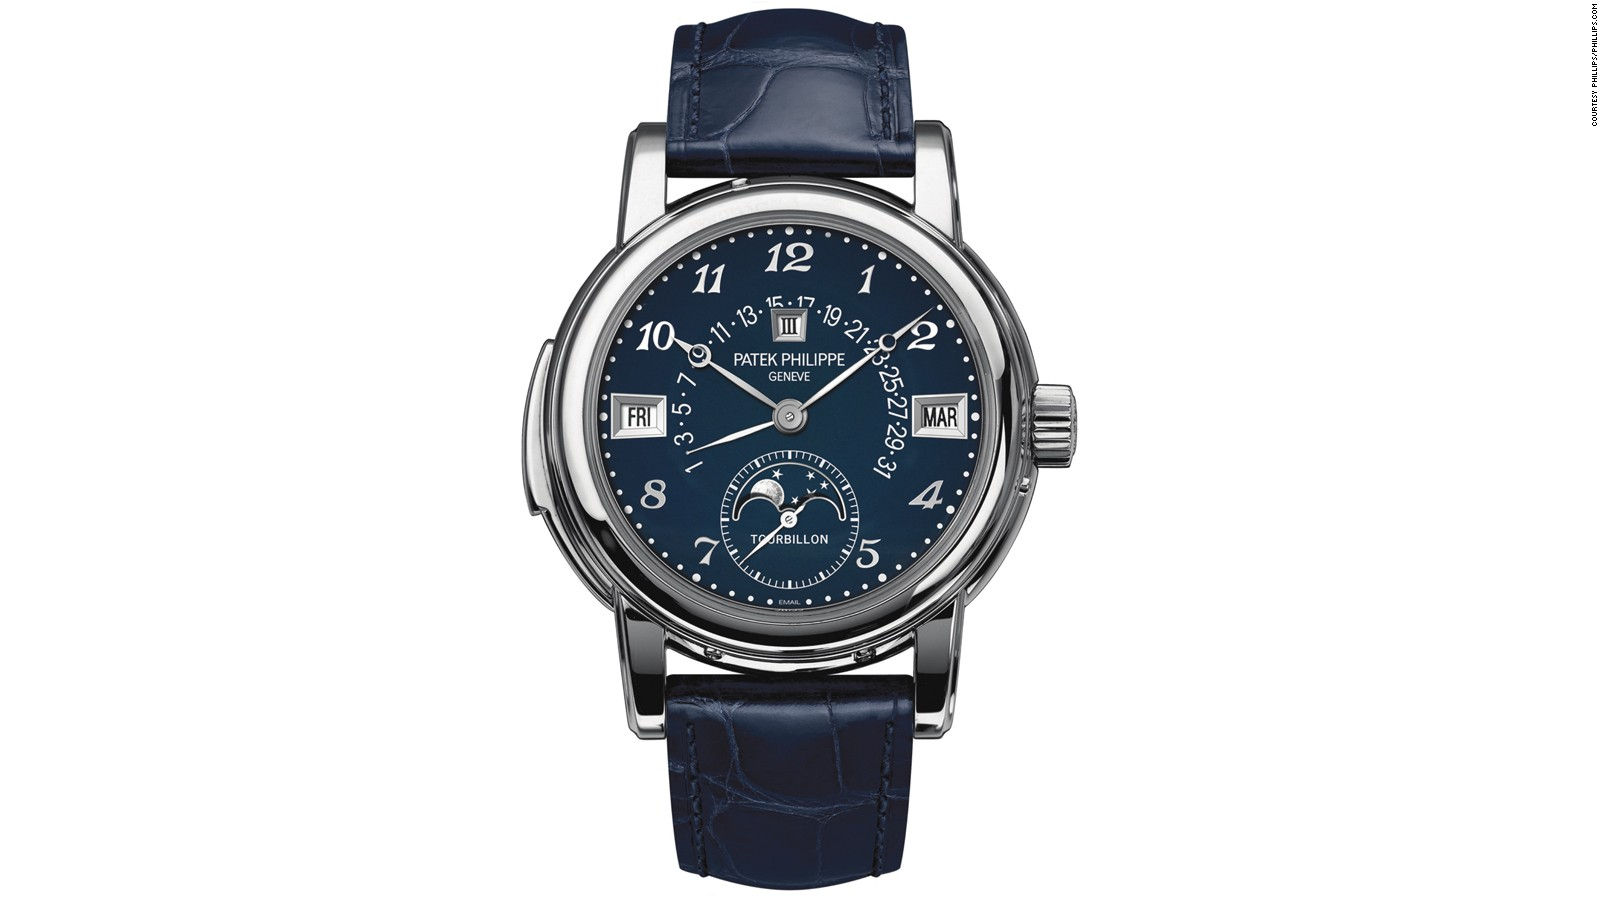 P Philippe Watch Why Collectors Covet Patek Philippe Timepieces Cnn Style